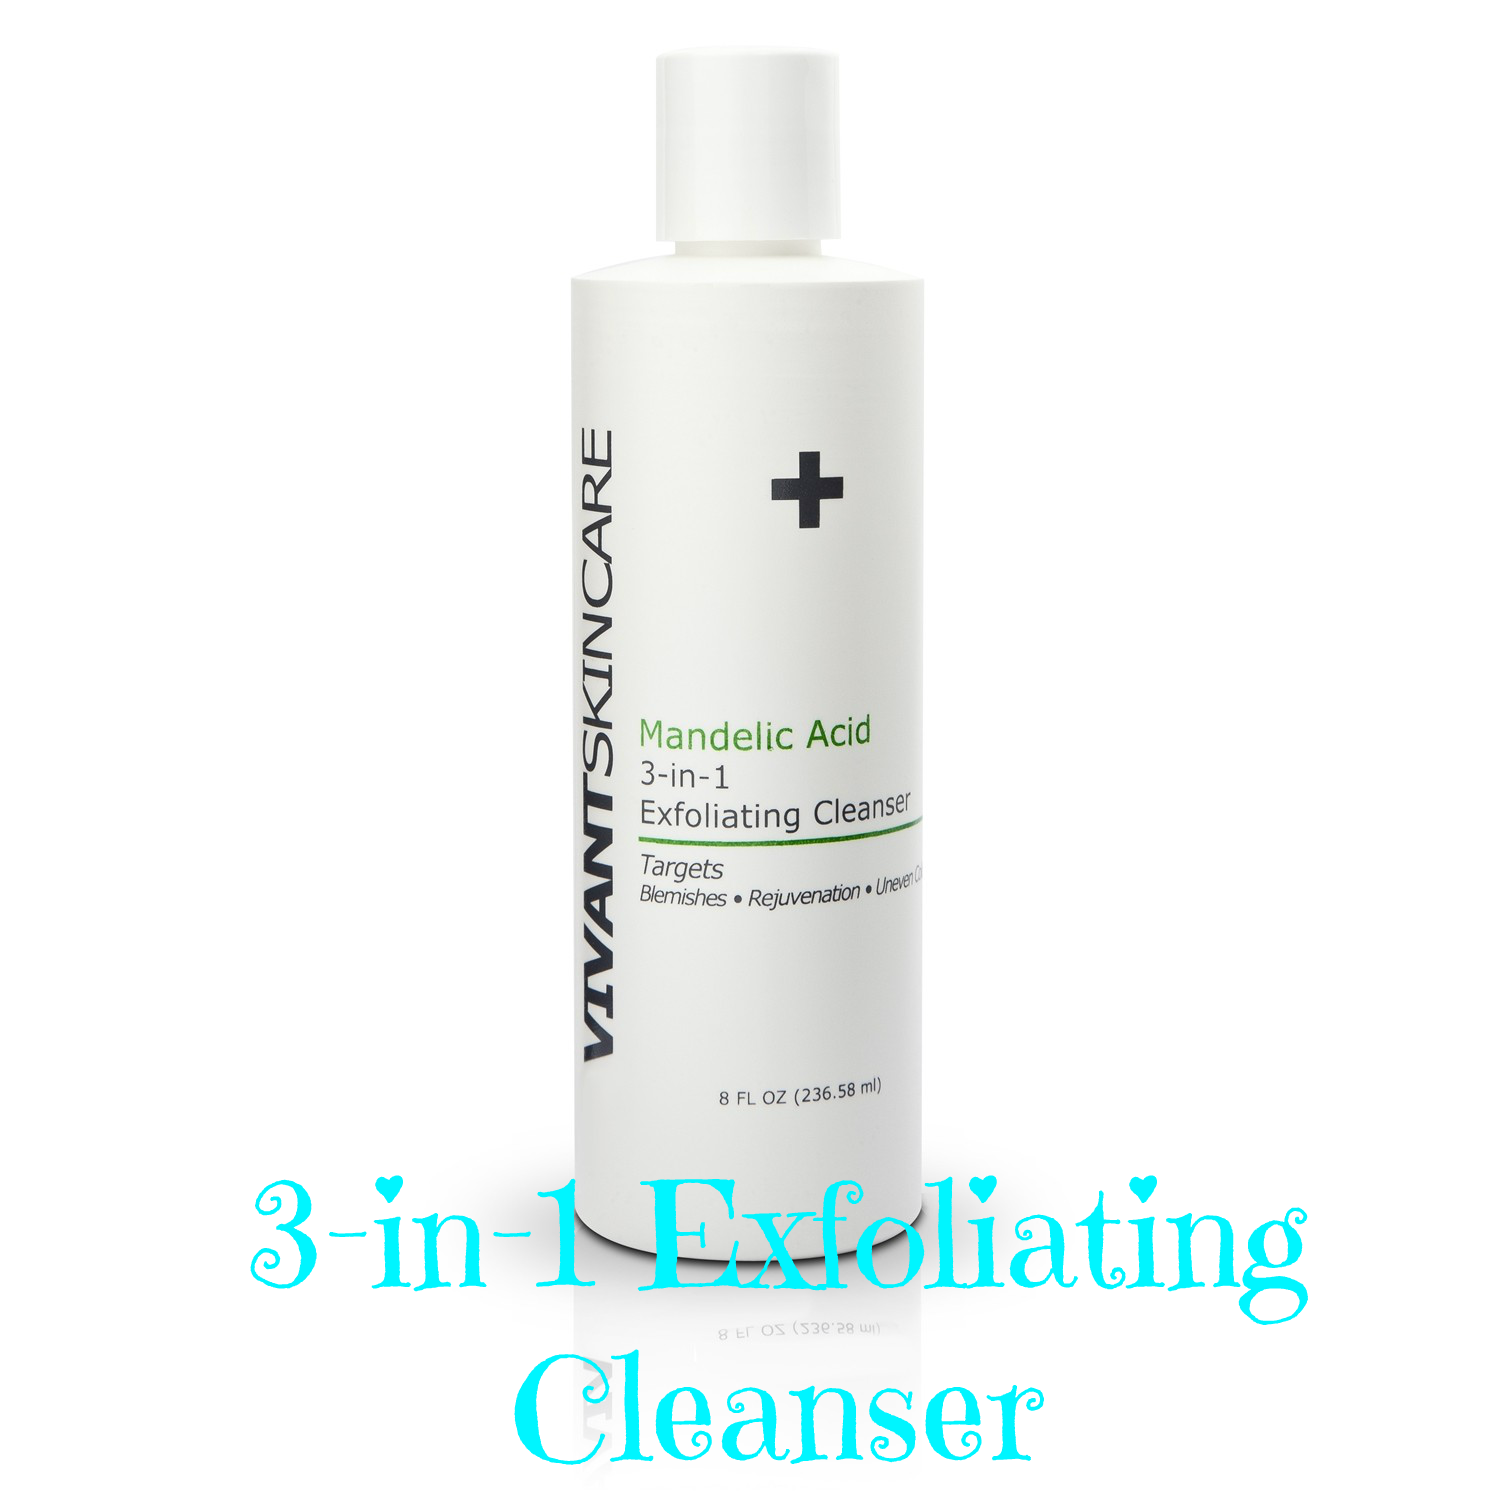 Exfoliating cleanser, 3-in-1 exfoliating and cleansing lotion